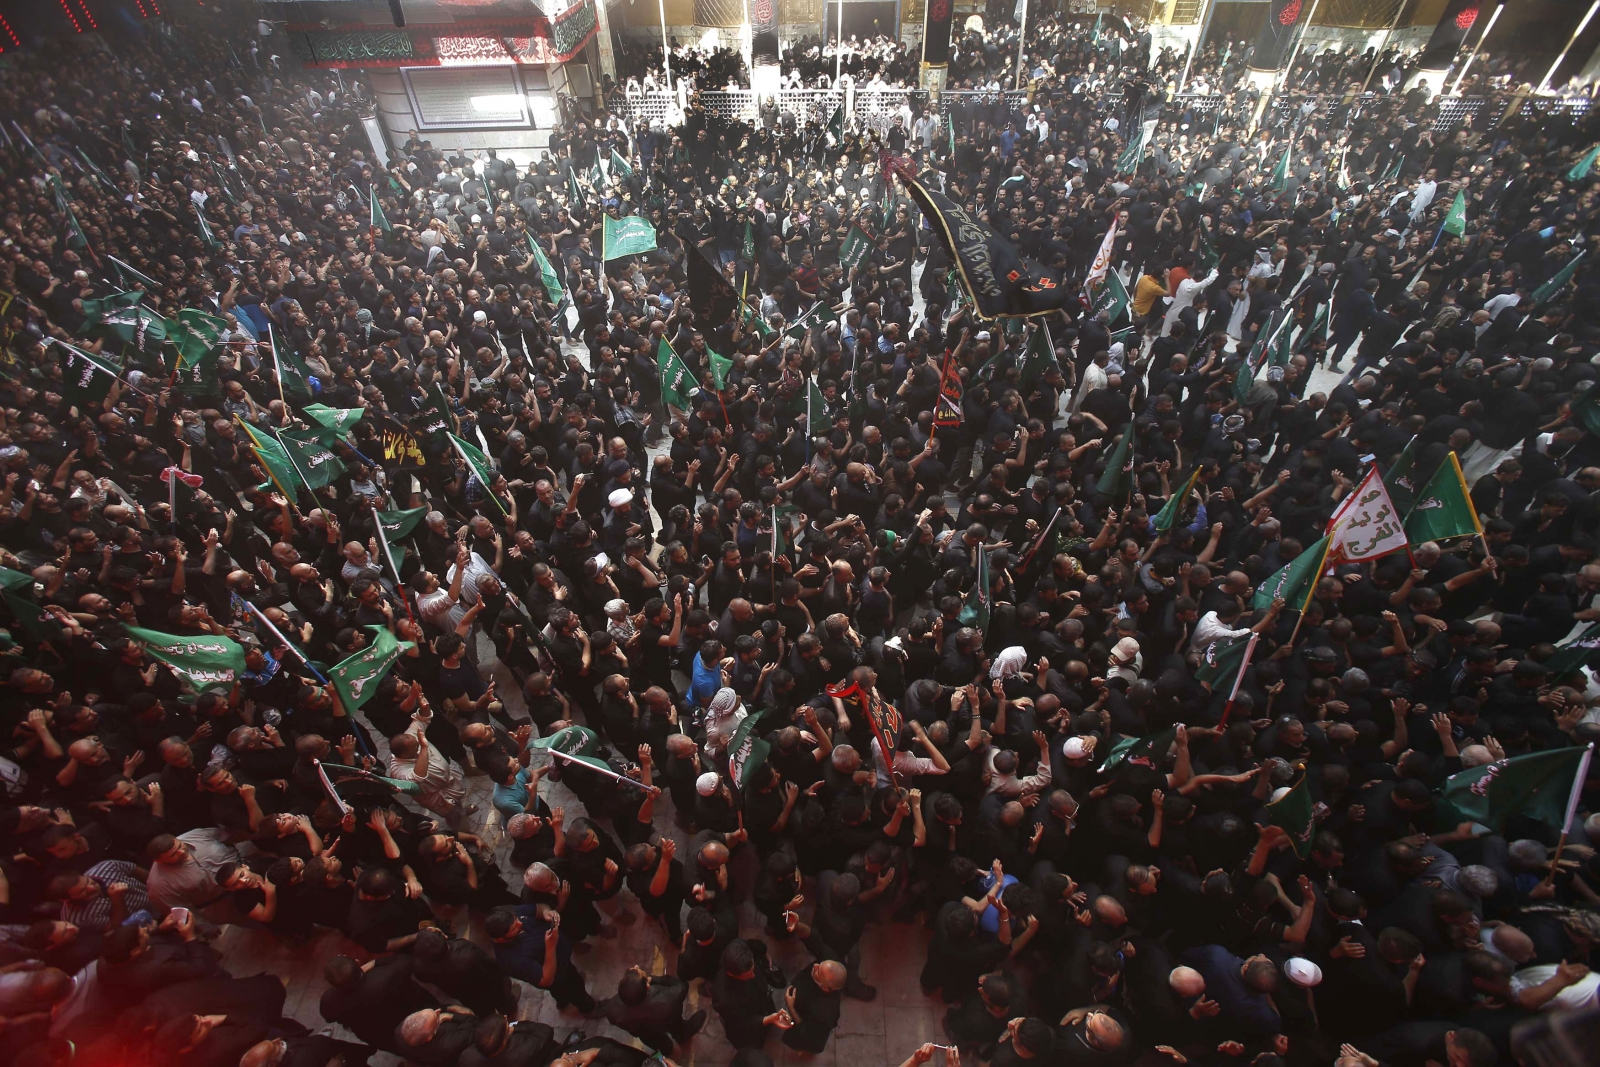 The holy city of Karbala